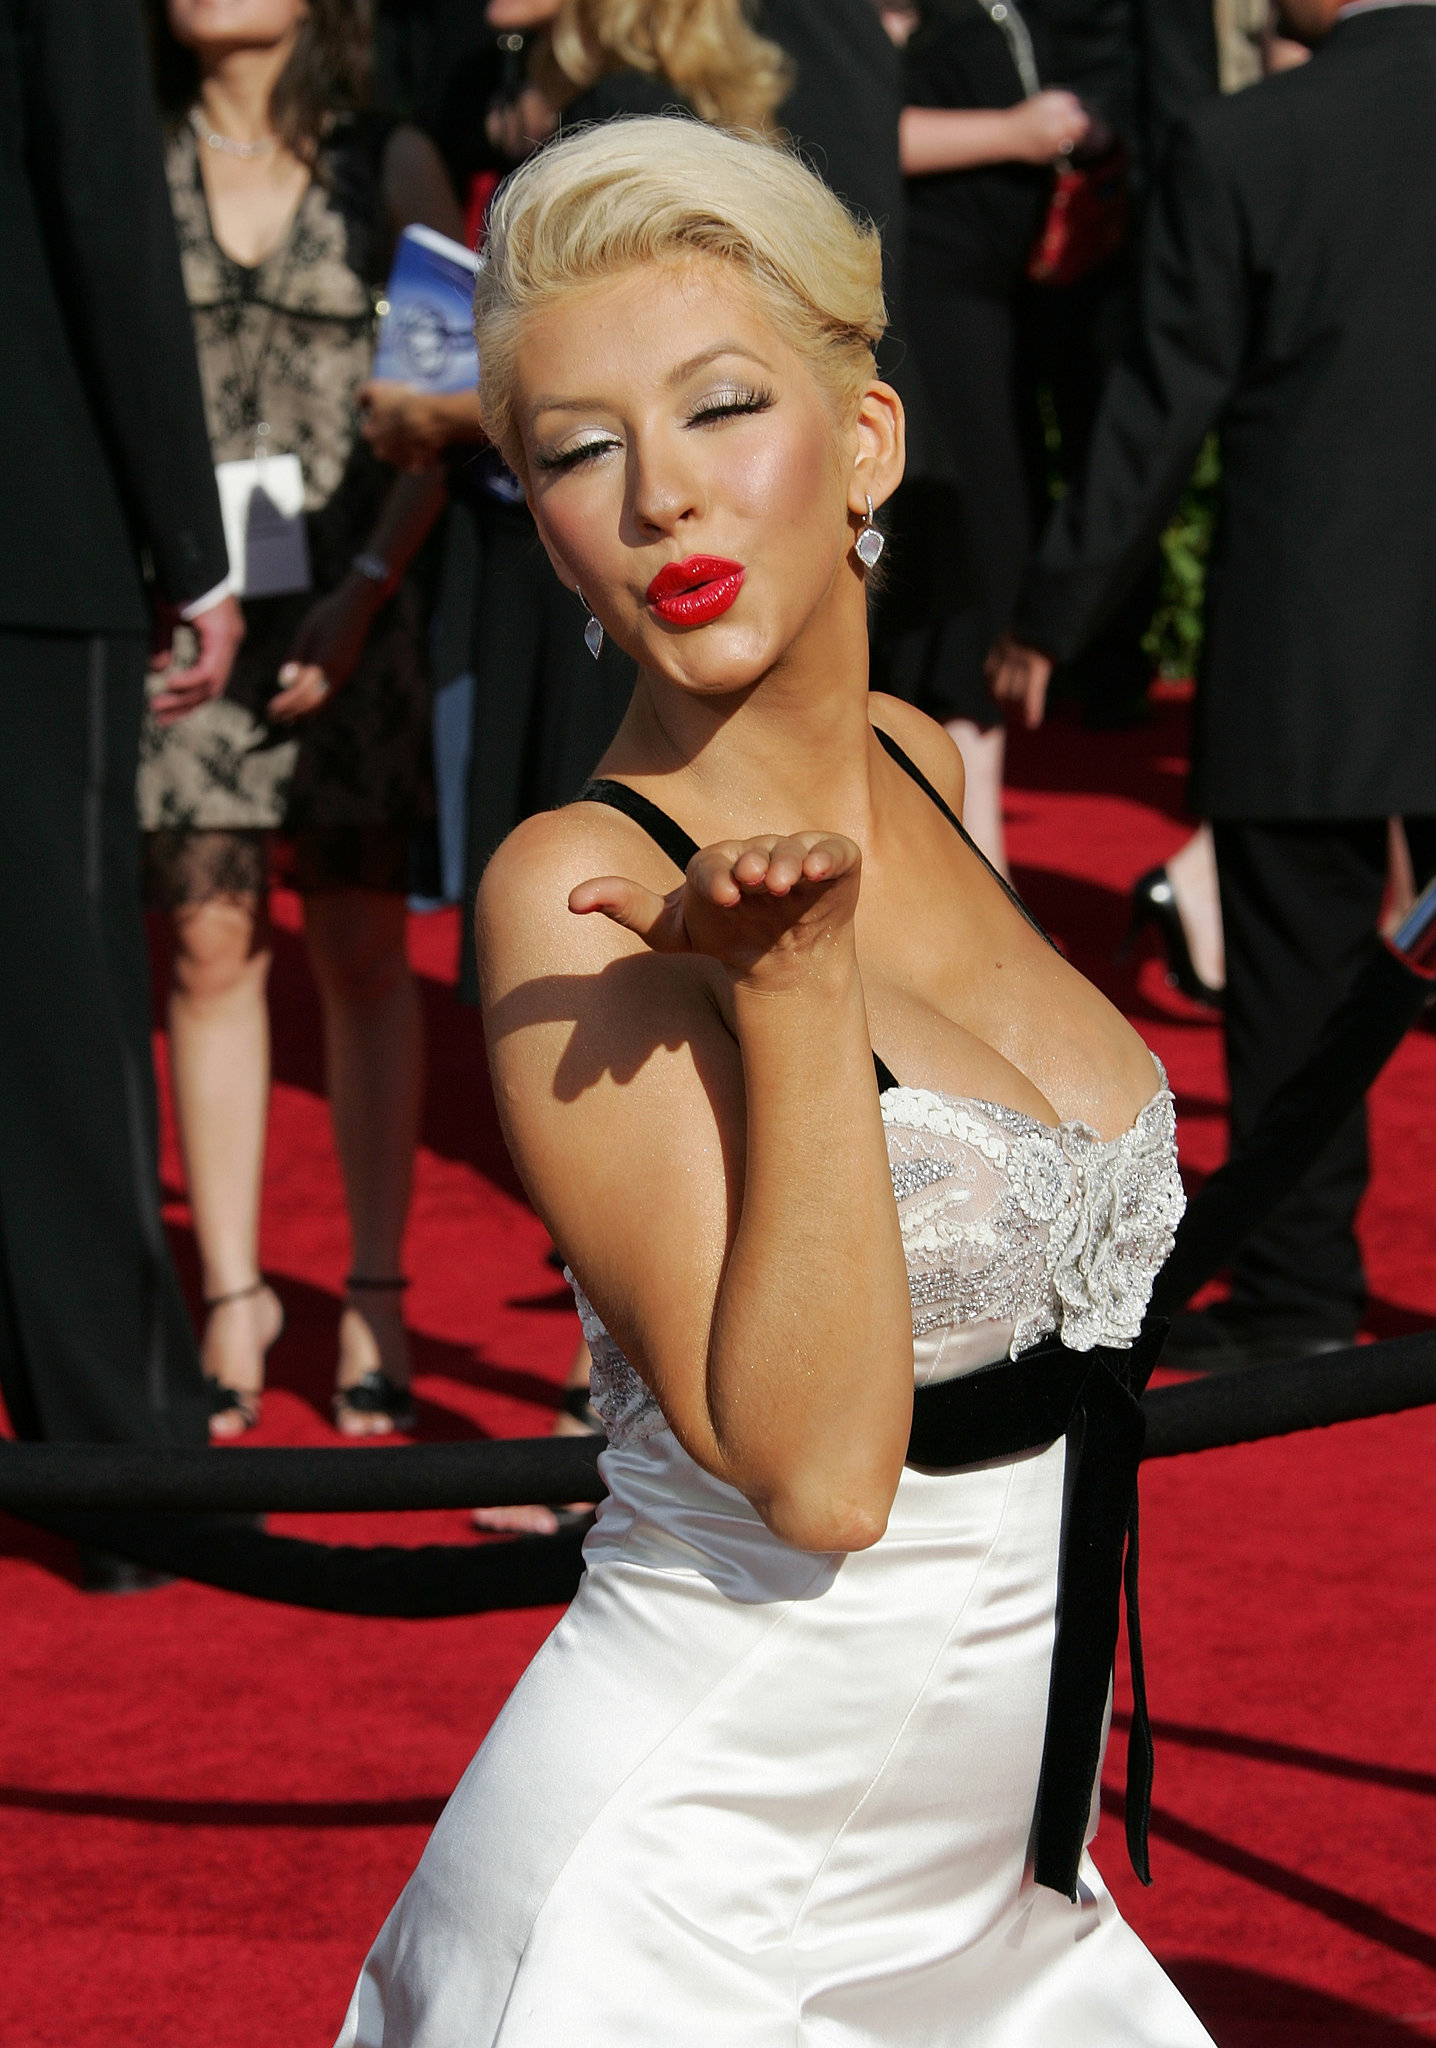 Christina Aguilera blew a kiss to fans in 2007.